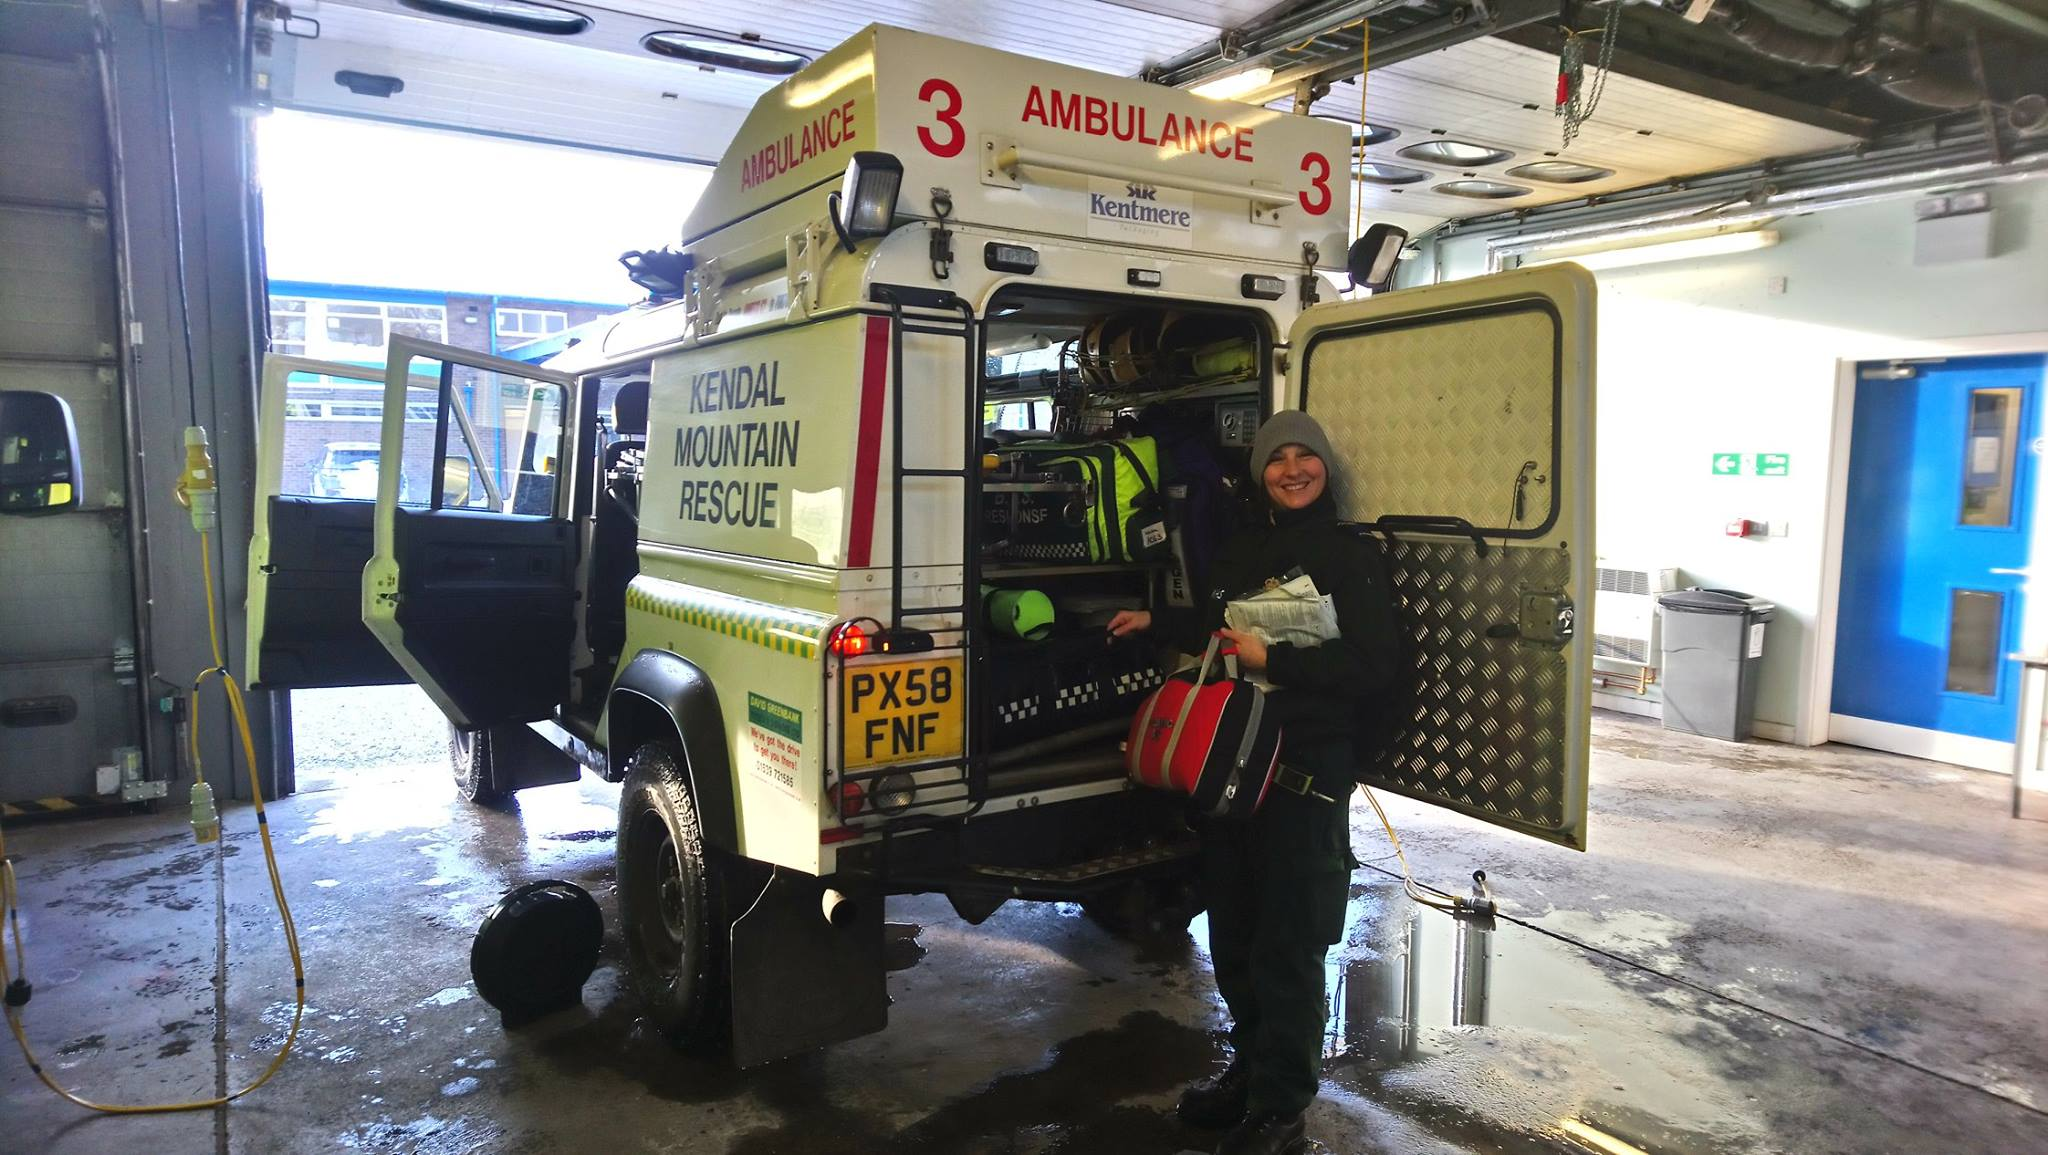 2018 Incident #10: 28 February – Lending a 4×4 to NWAS to Help With Snow